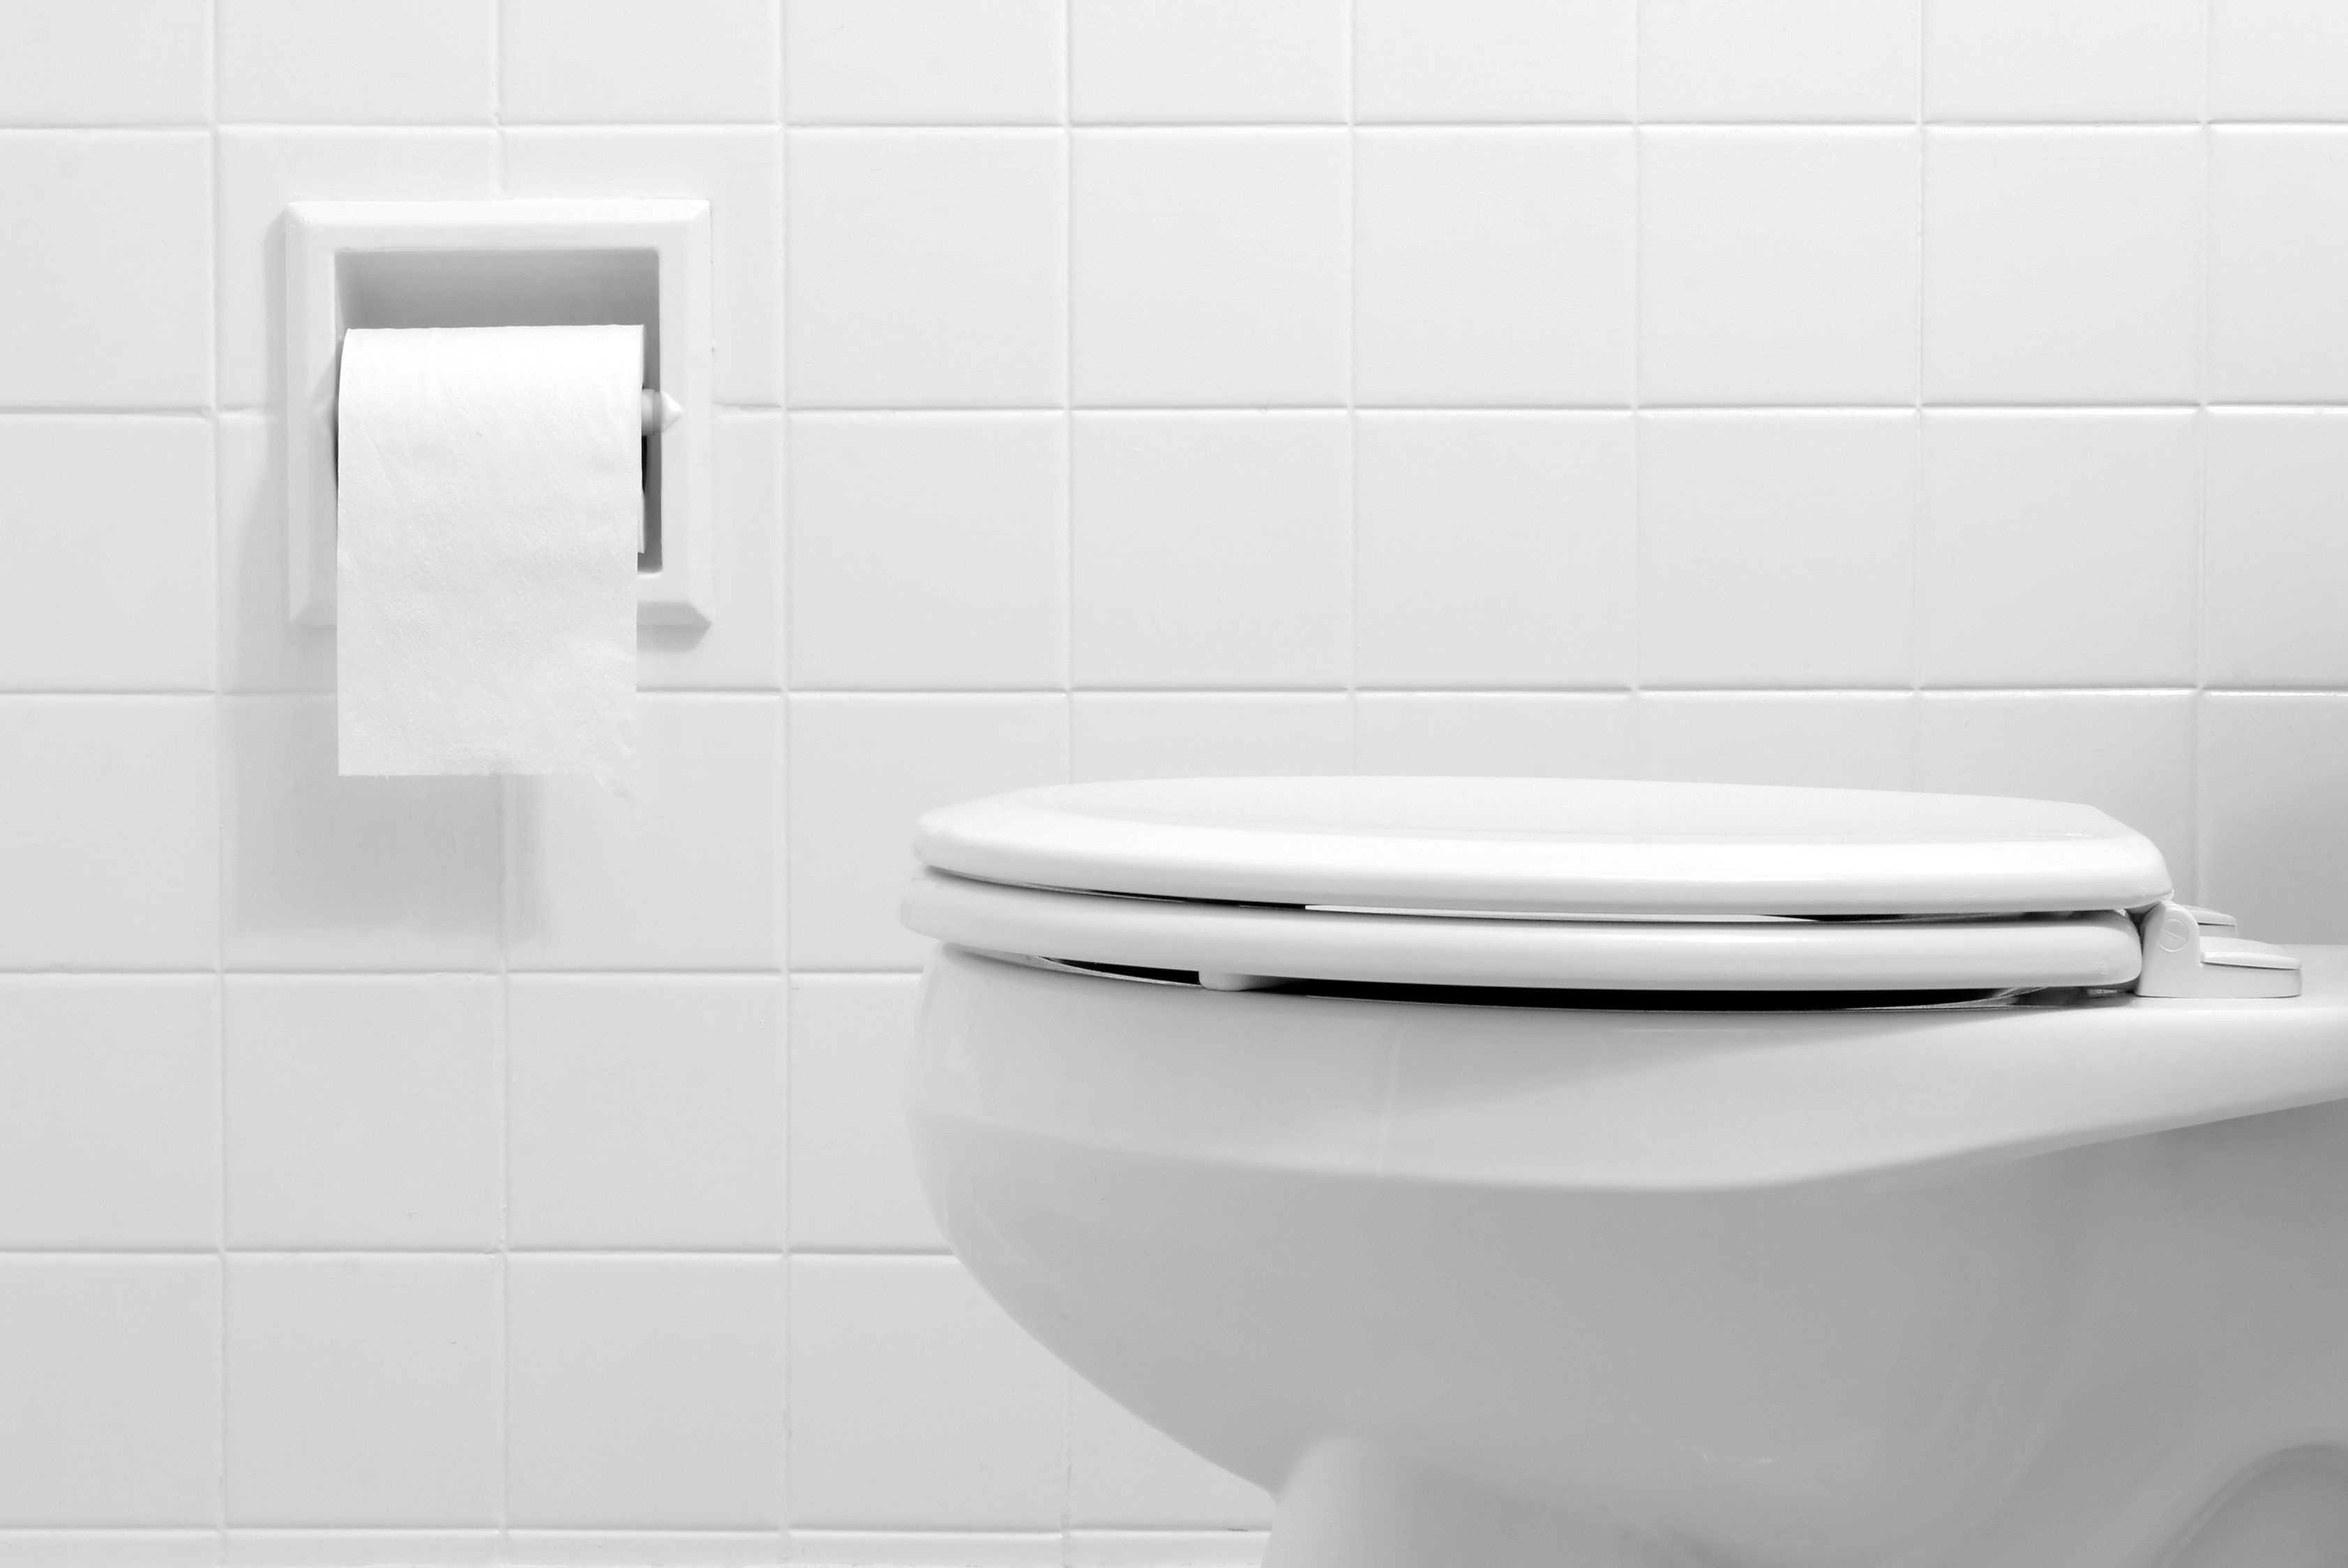 How to remove hard water stains in a toilet - Bathroom cleaner for hard water stains ...